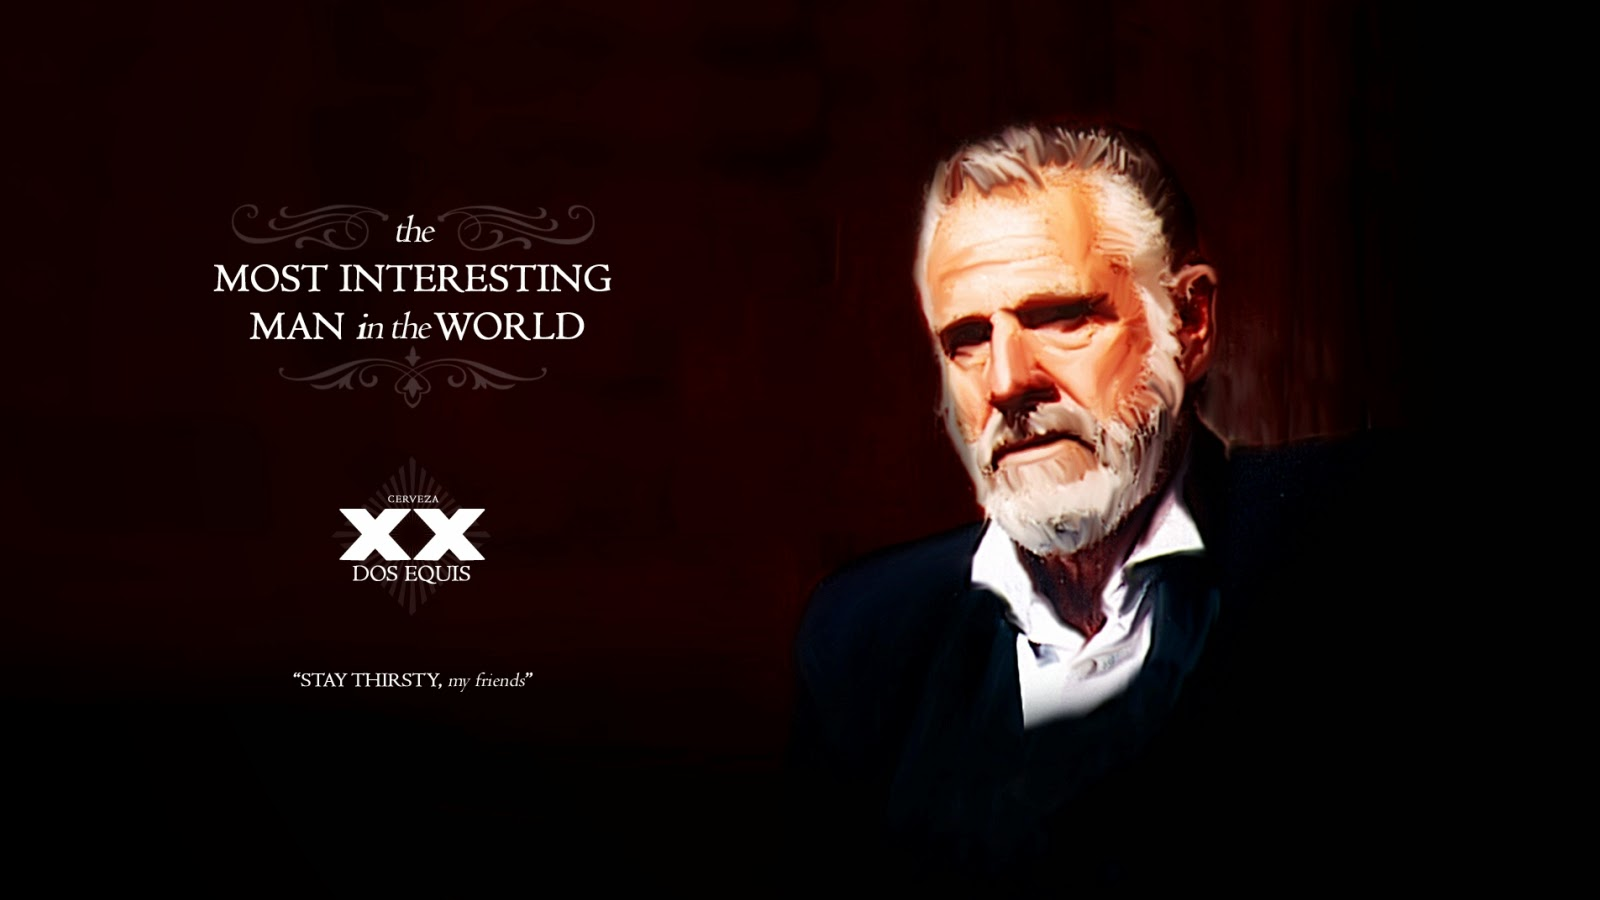 The Interesting Man In The World Quotes: Pet Dos Equis Quotes. QuotesGram